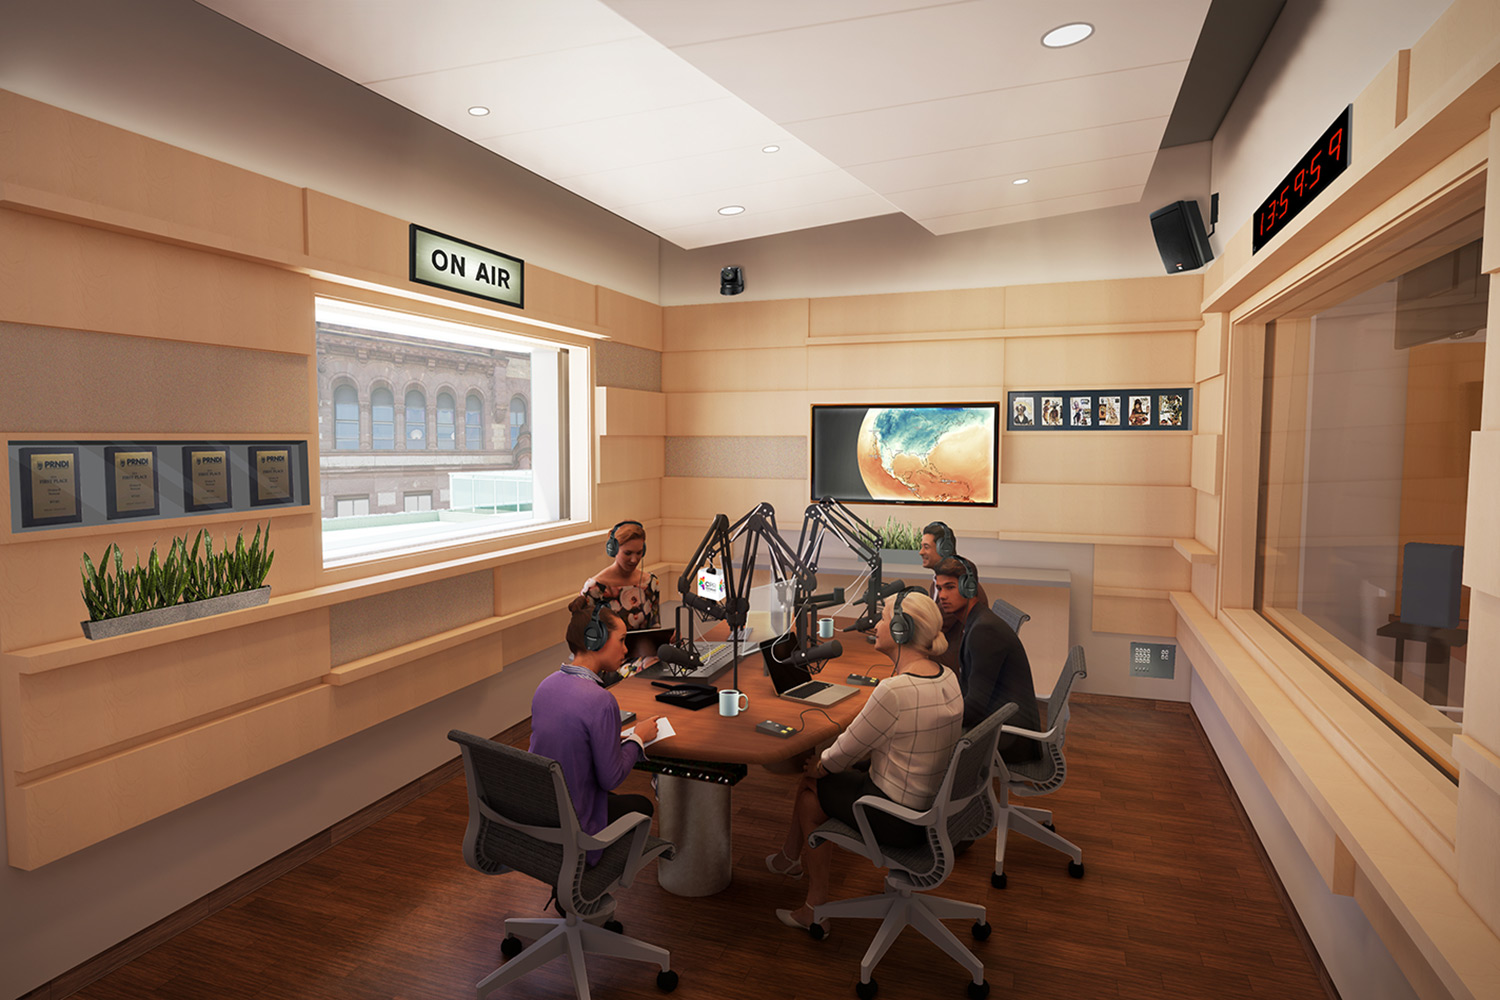 WSDG services were retained for the design of one recording studio, two productions studios and overall acoustics of the new headquarters for the Cincinnati Public Radio. On-Air Studio 1.